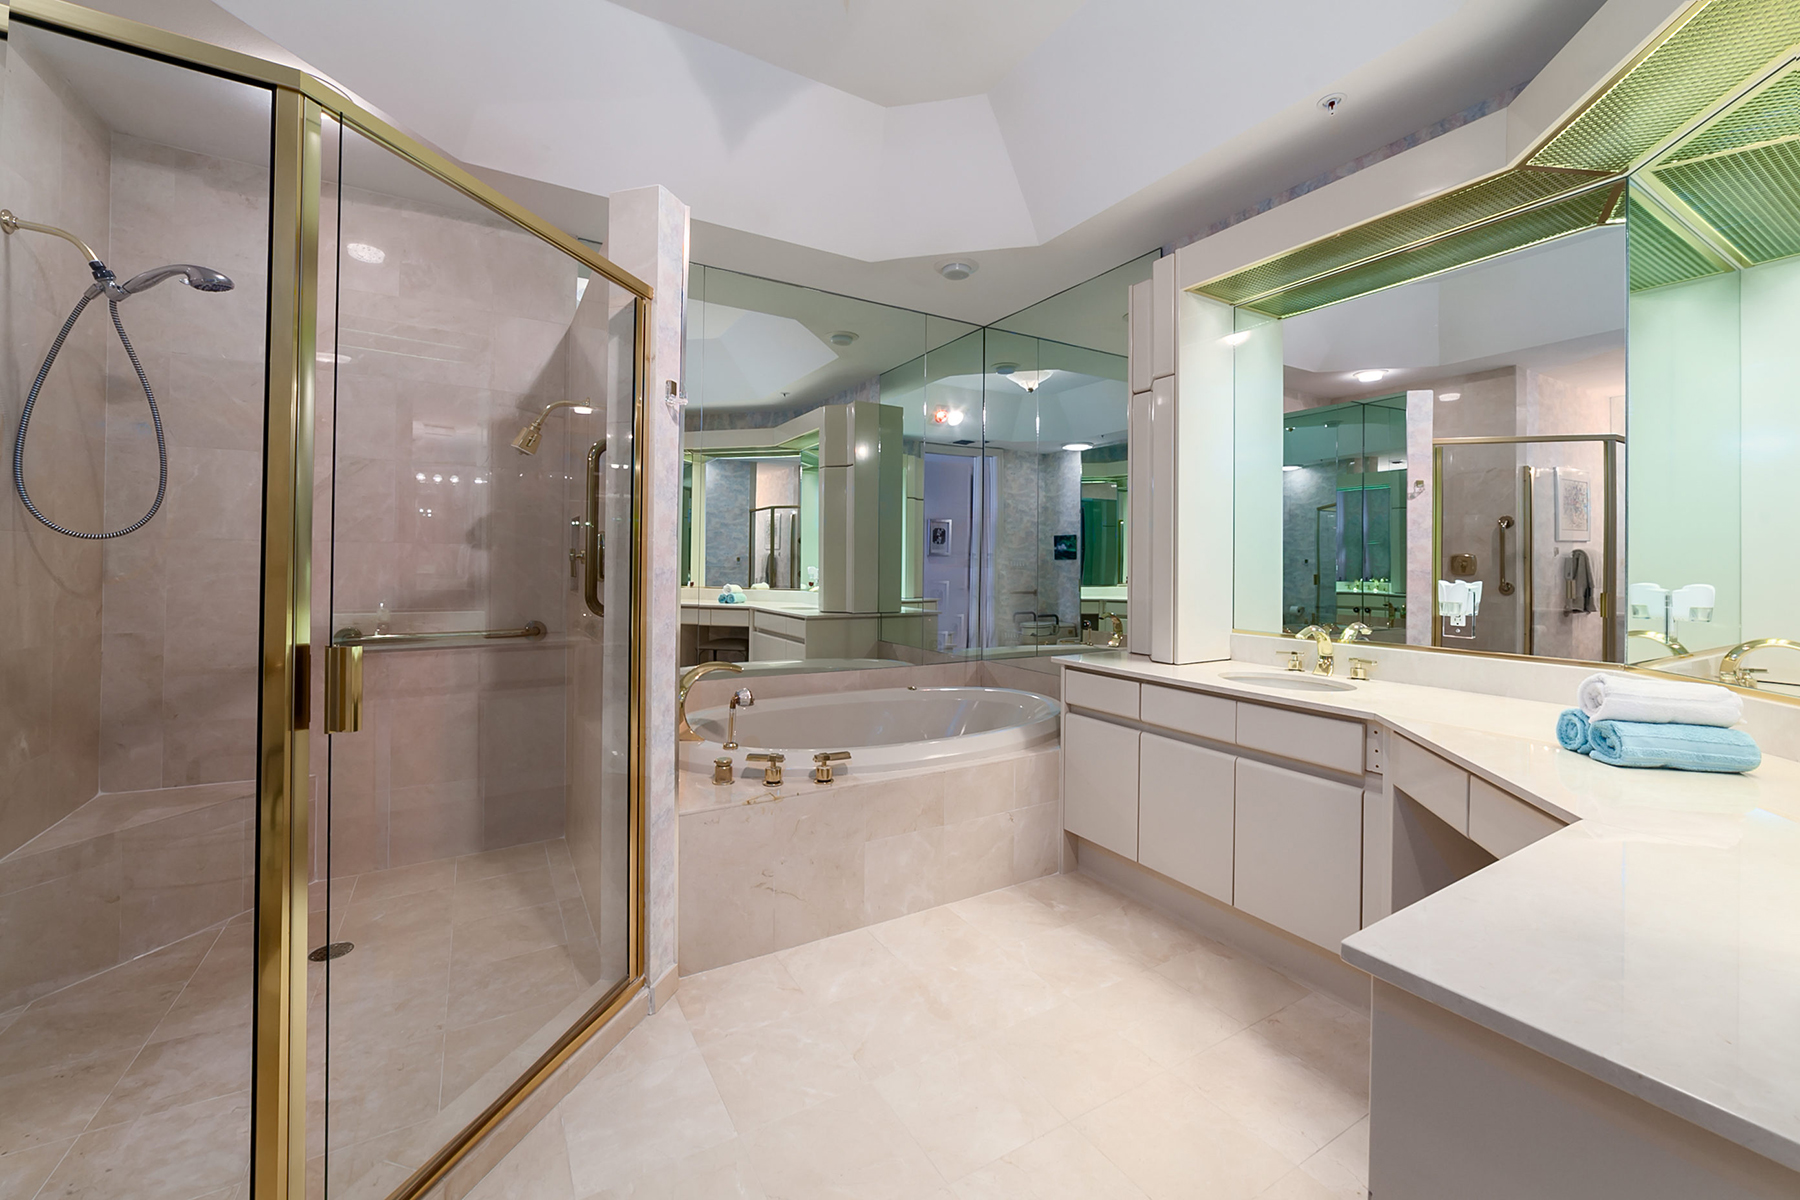 Additional photo for property listing at L'AMBIANCE 435  L Ambiance Dr K206,  Longboat Key, Florida 34228 United States